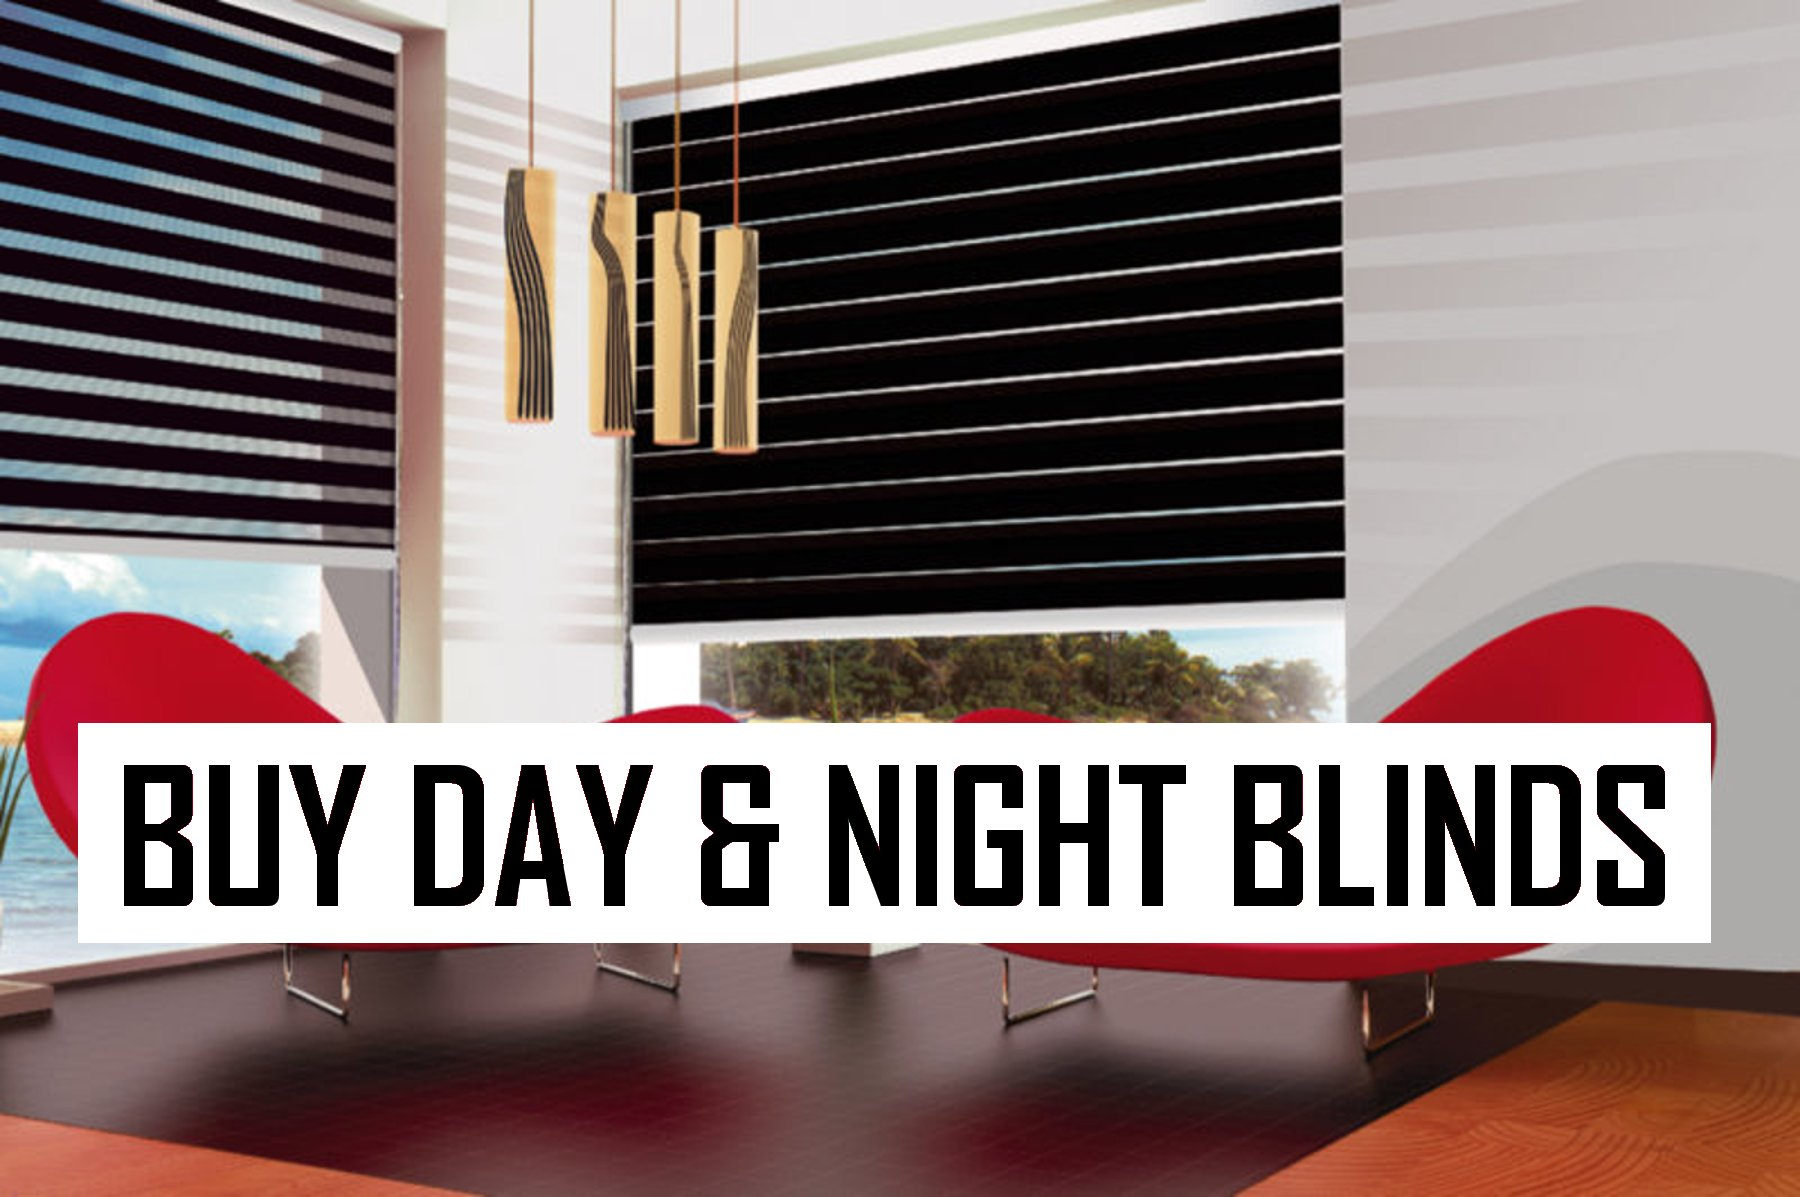 SHOP DAY & NIGHT BLINDS